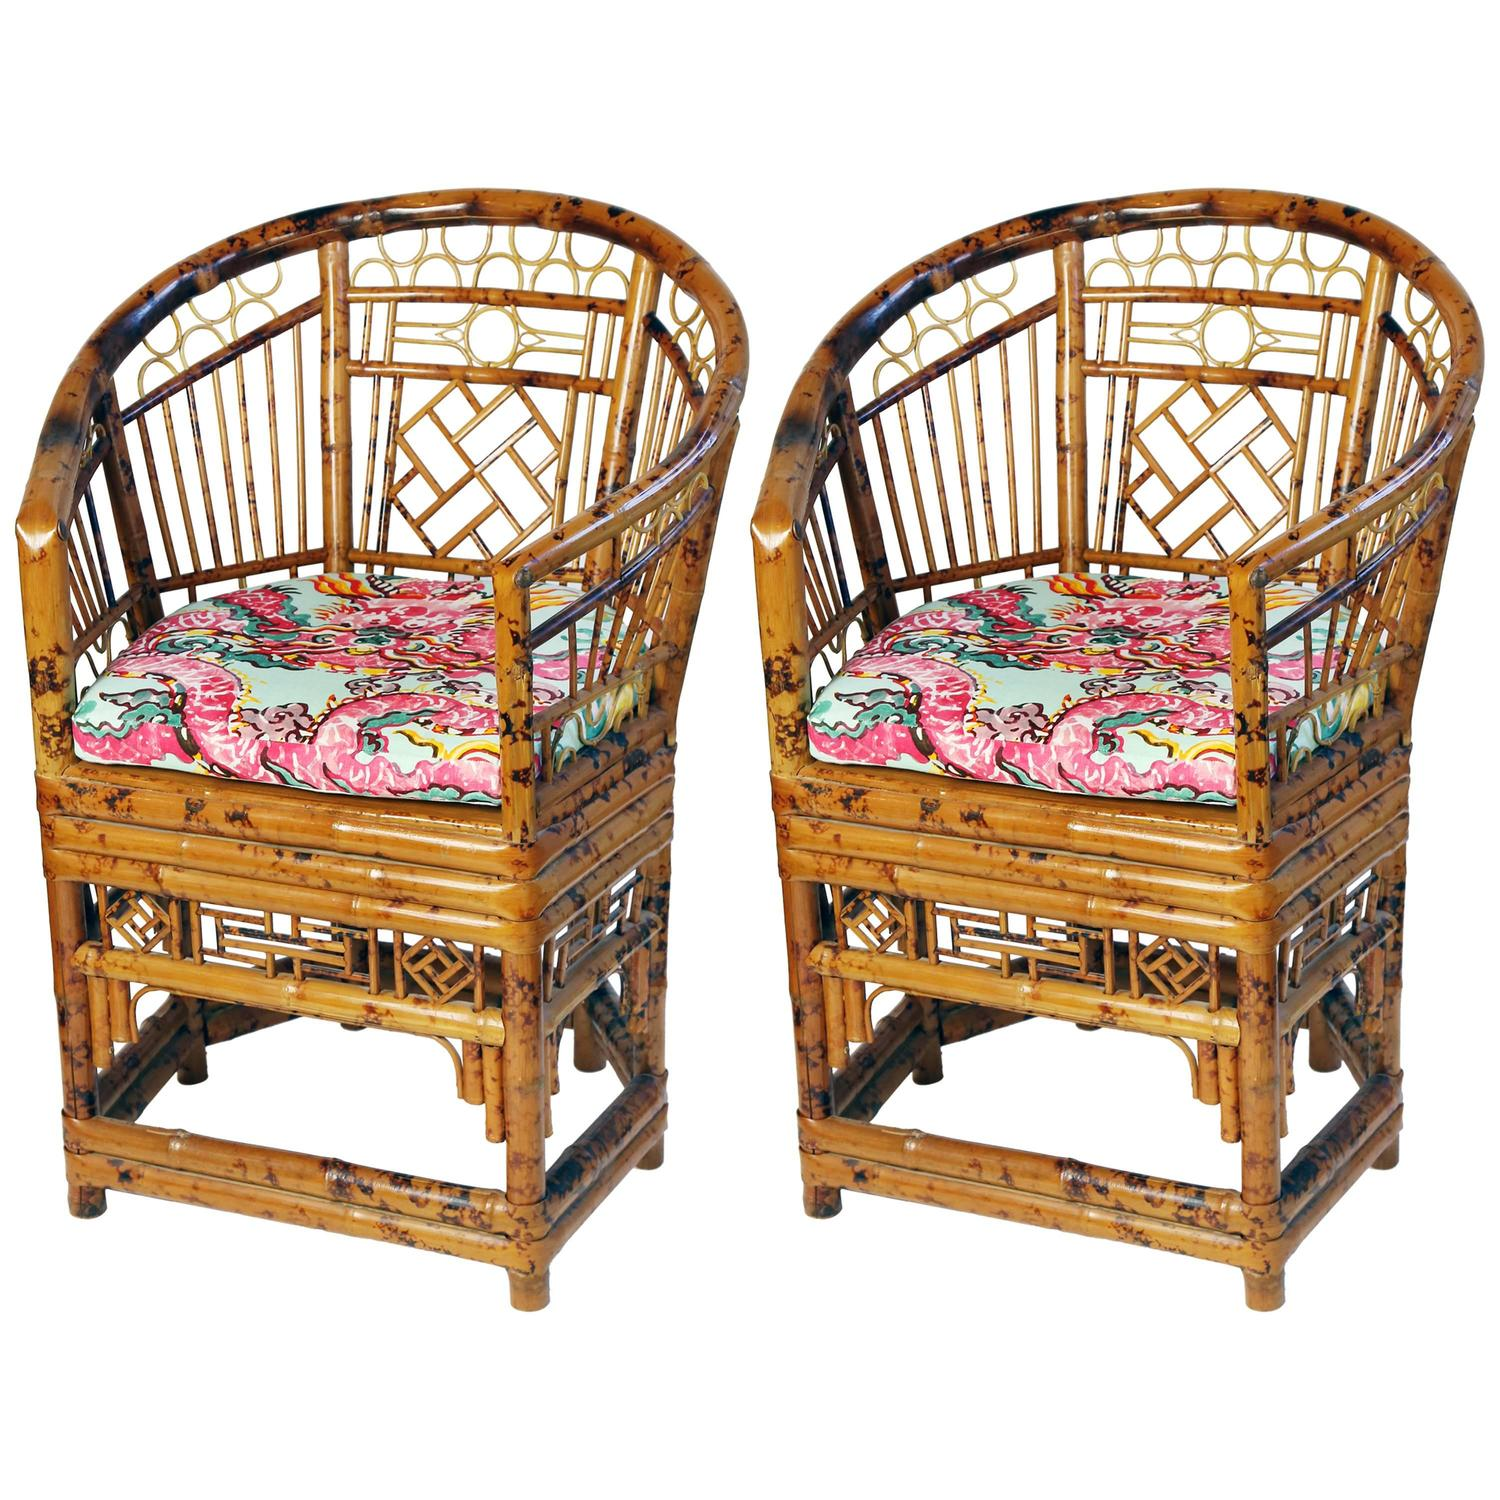 Pair of Brighton Pavilion Chinoiserie Style Bamboo Chairs at 1stdibs